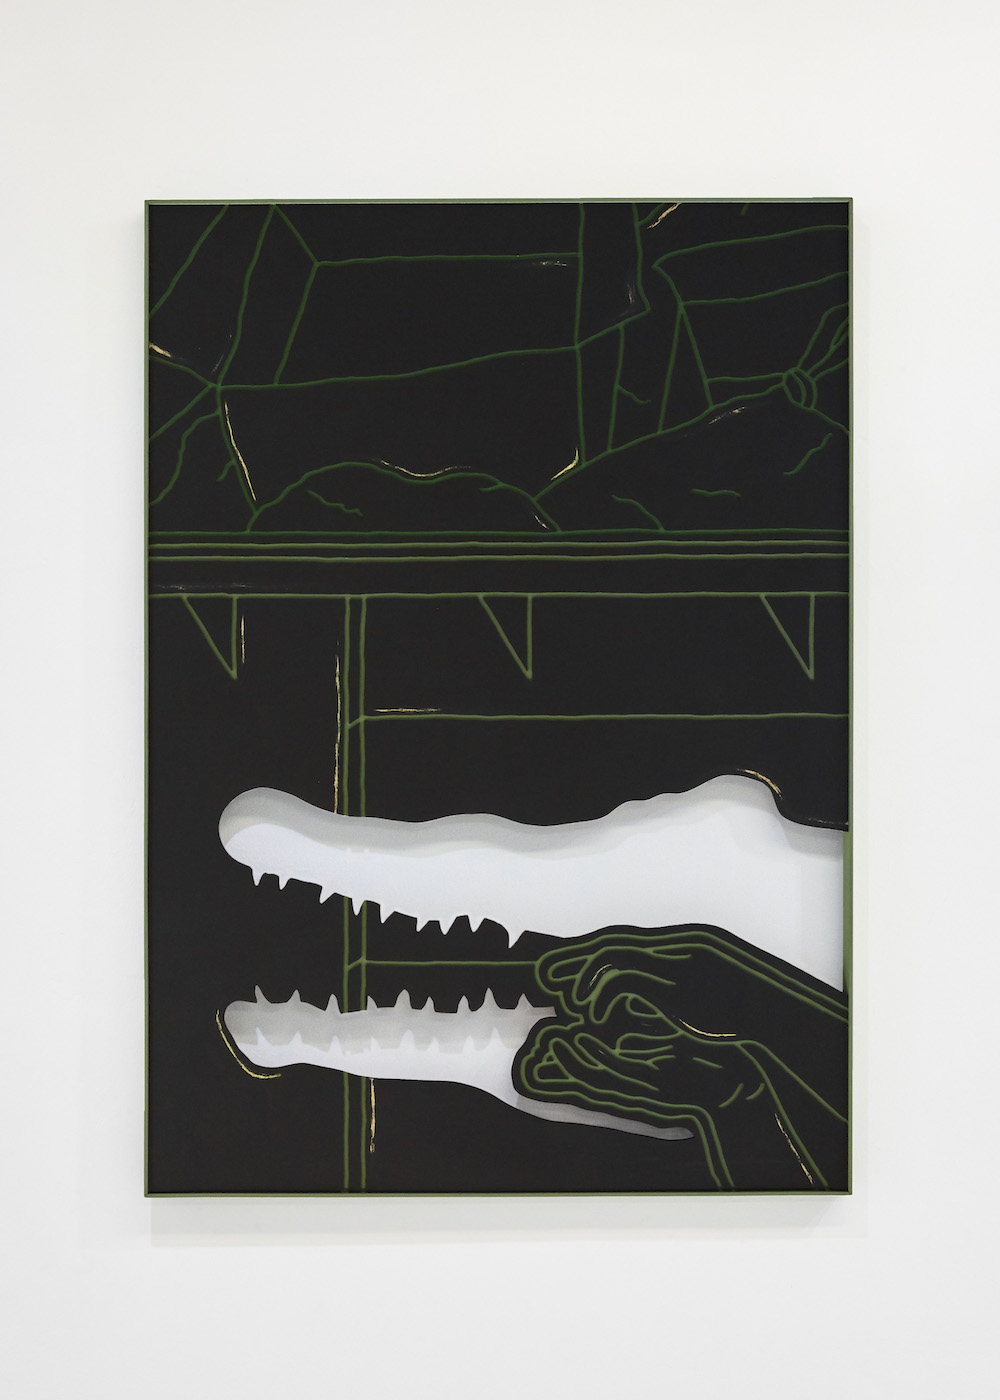 Milly Peck, Untitled, 2017. Emulsion on board. 113 x 85 x 5 cm.